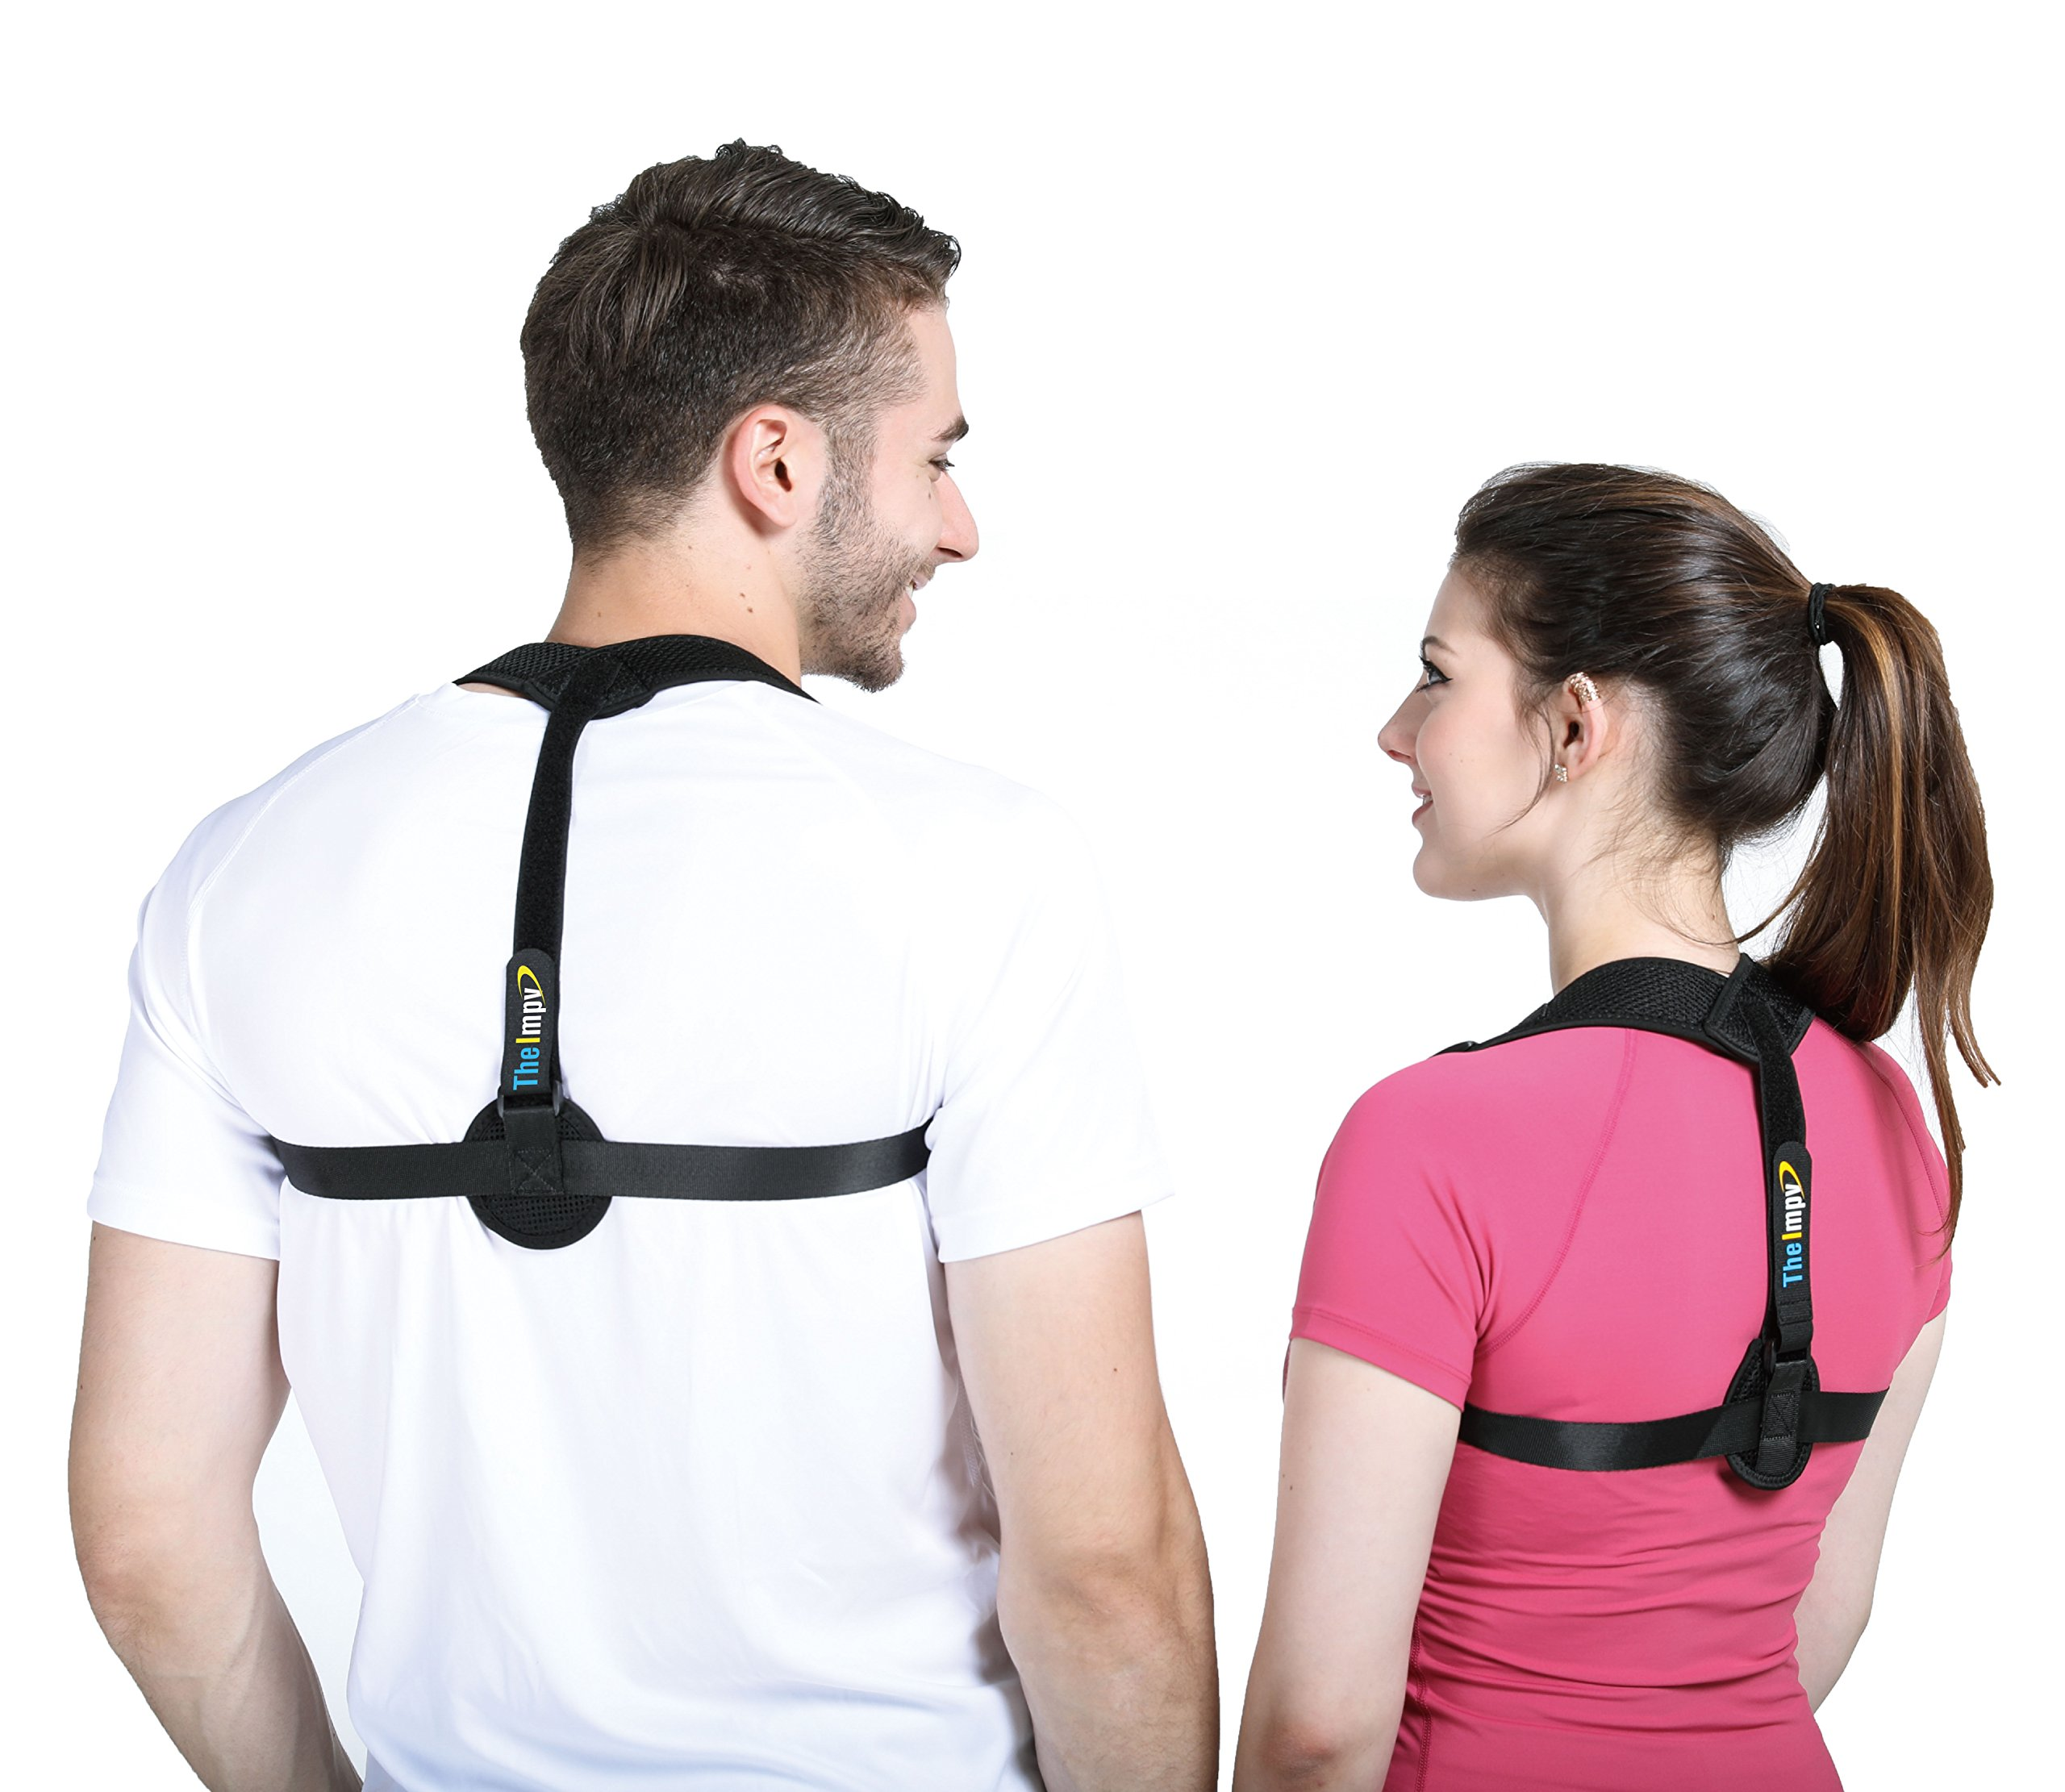 TheImpv Back Posture Corrector for Women, Men & Kids - Adjustable Clavicle Support Brace for Hunching & Slouching, Shoulder & Back - Upper Back Pain Relief - Improve Poor Posture by TheImpv